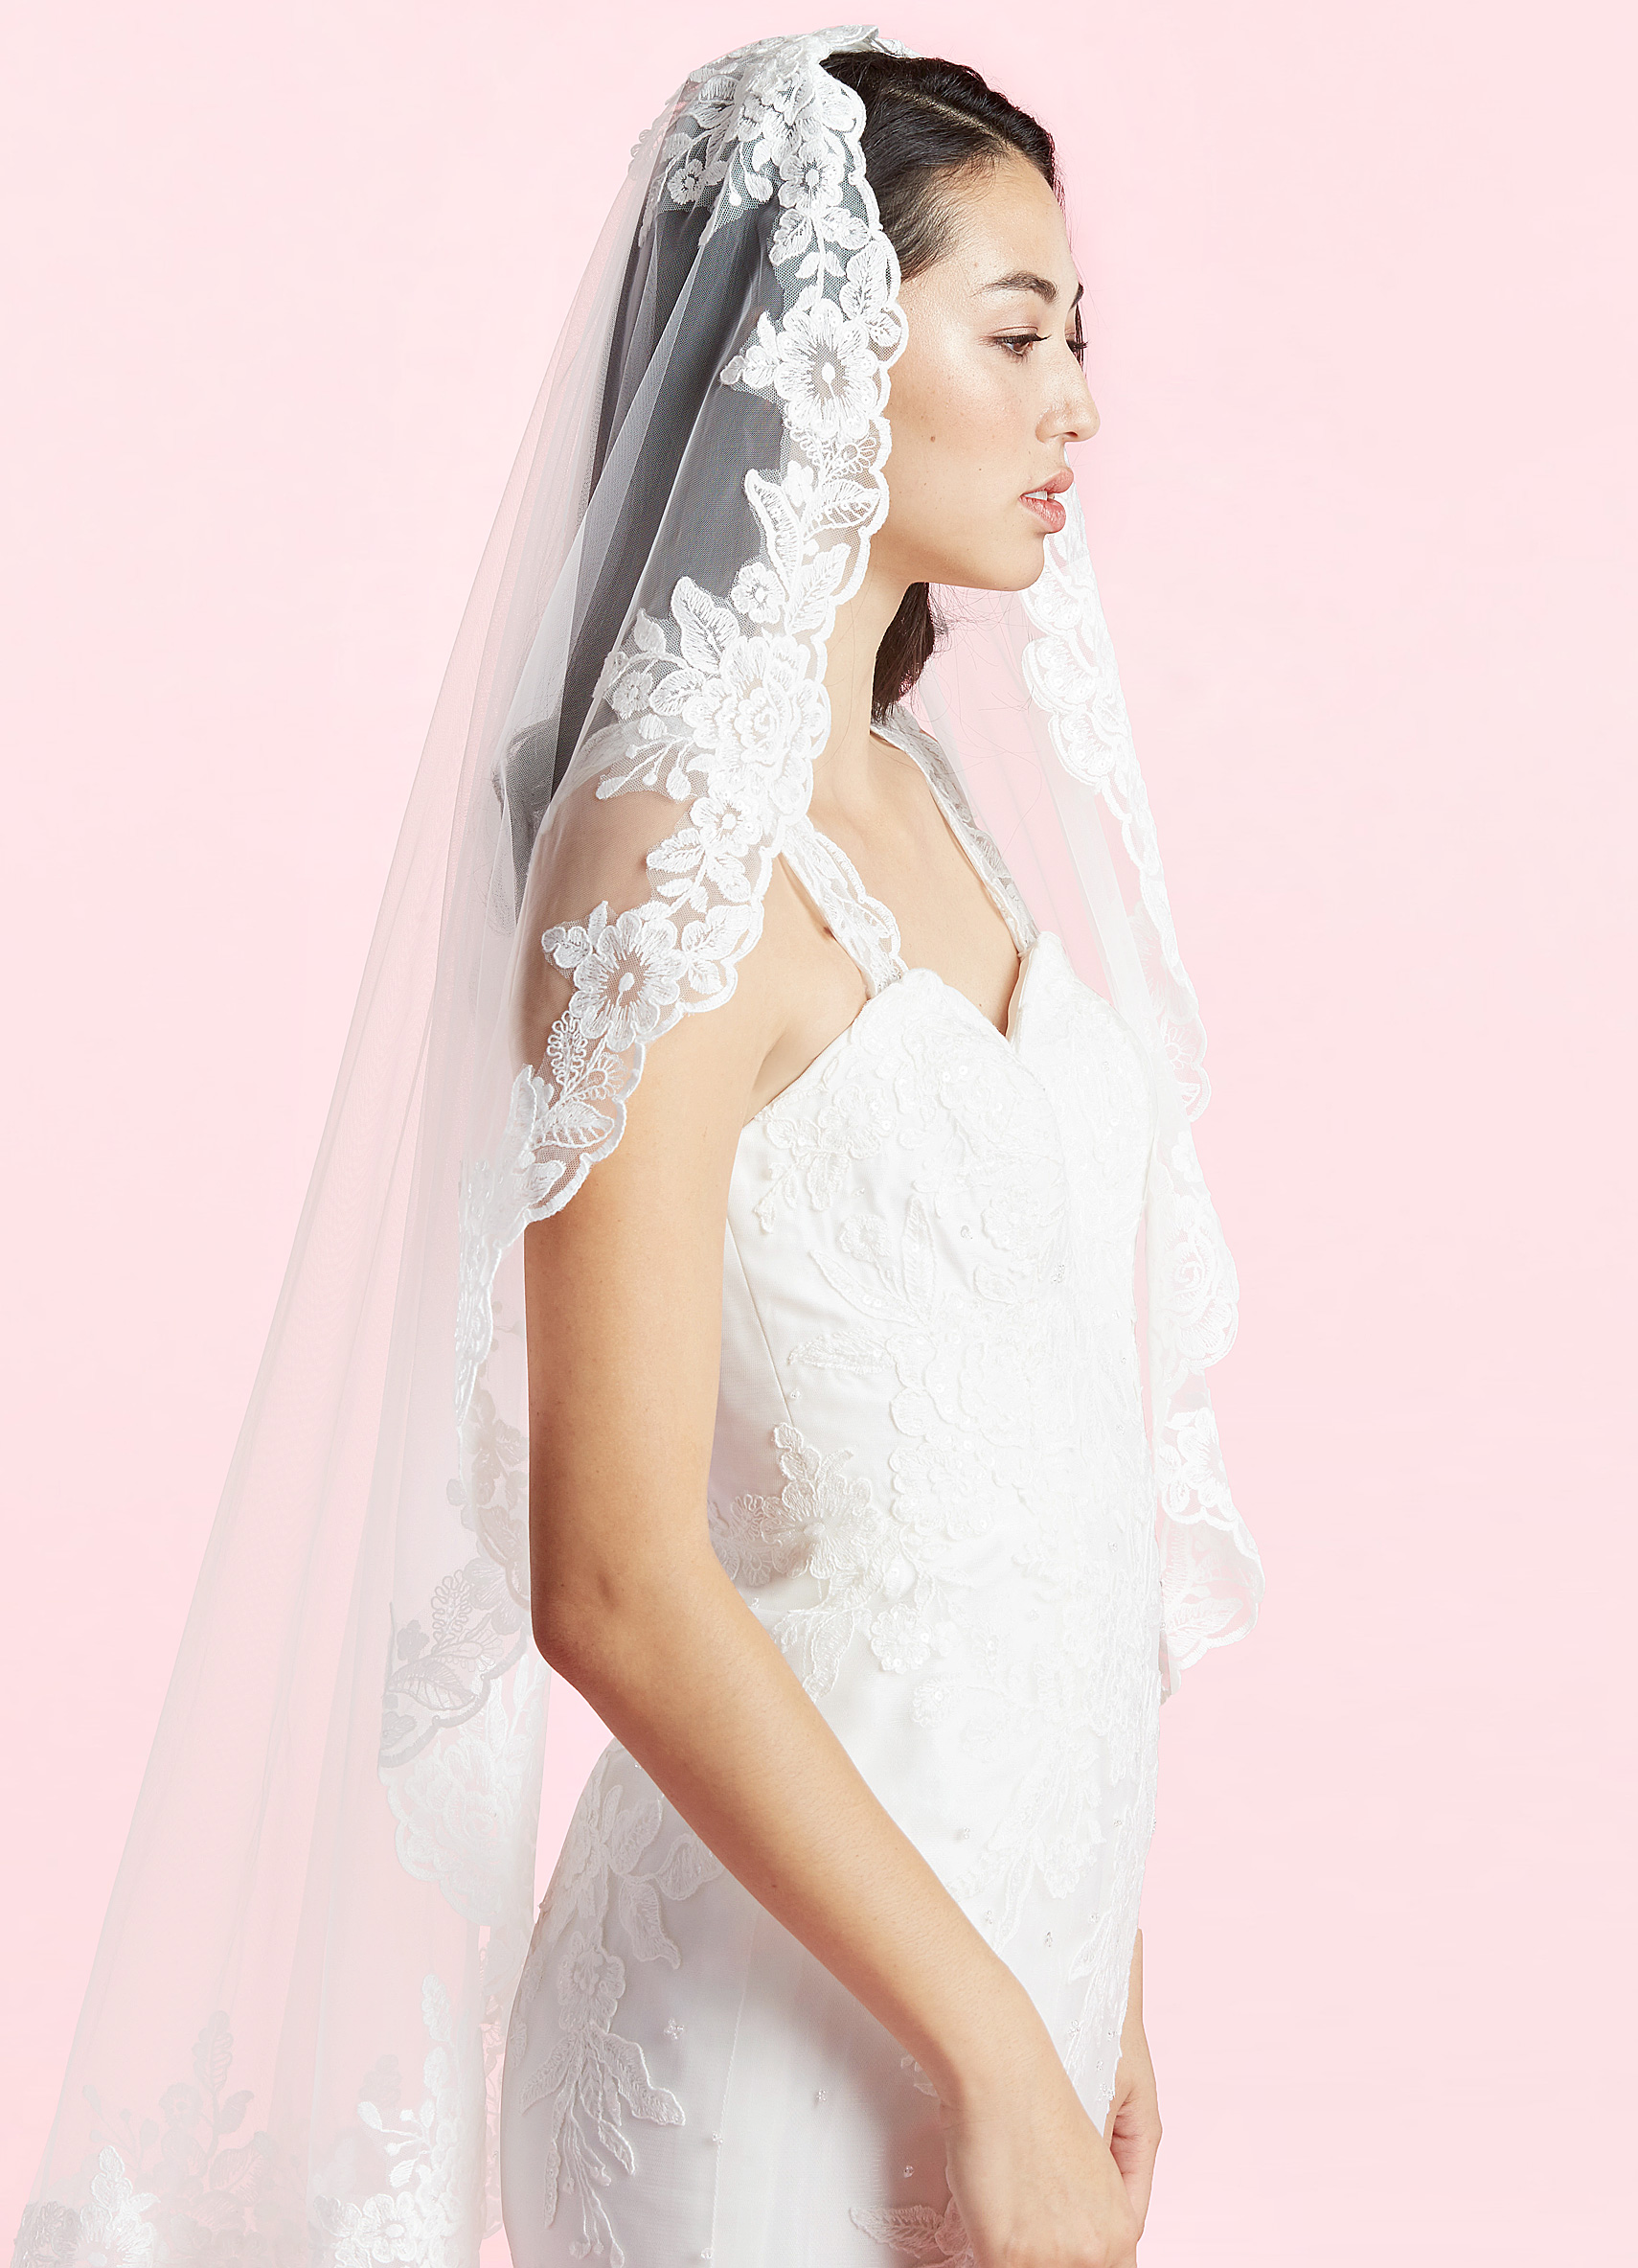 Shopping Tip: Azazie has veil's starting at just $19! Beautiful designs for a steal.